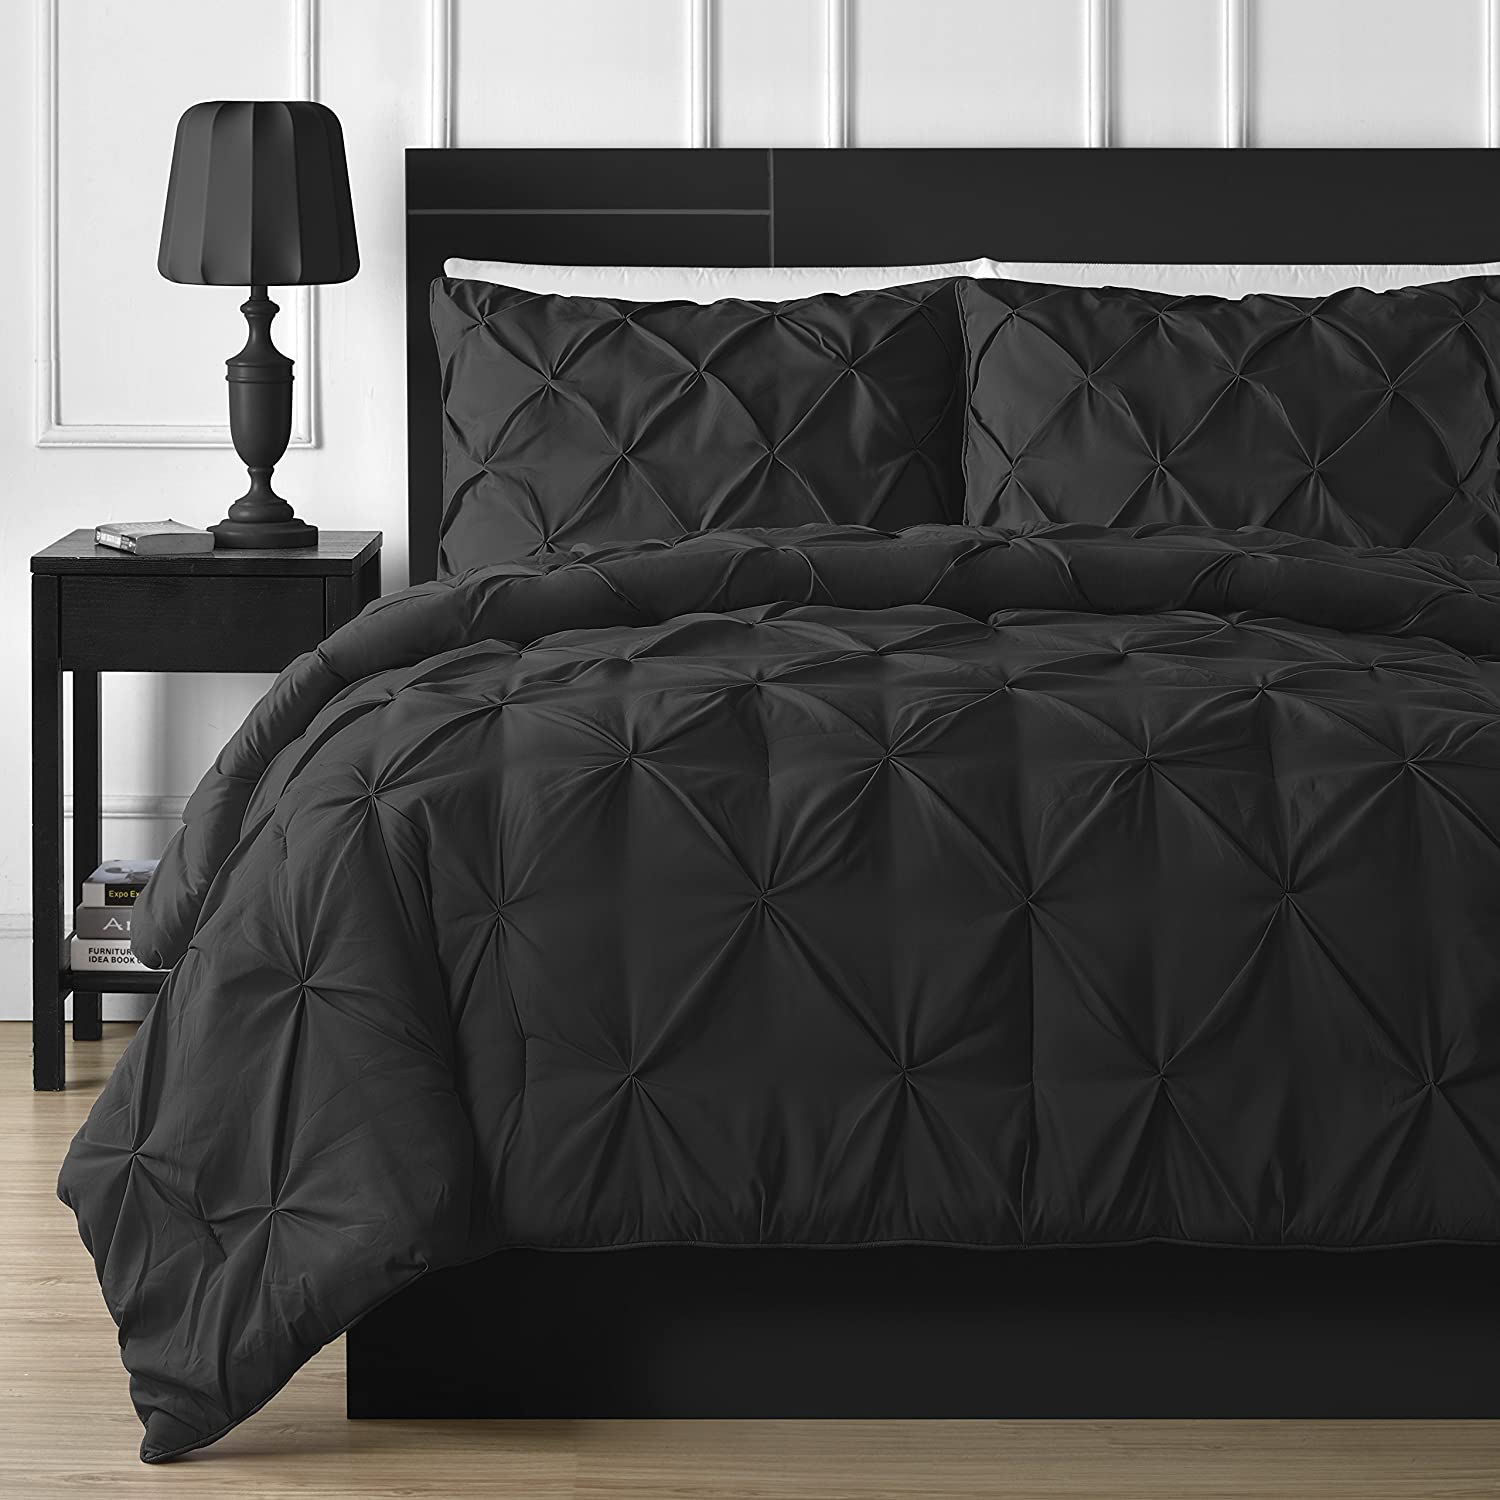 Double-Needle Durable Stitching Comfy Bedding 3-piece Pinch Pleat Comforter Set Queen, Black